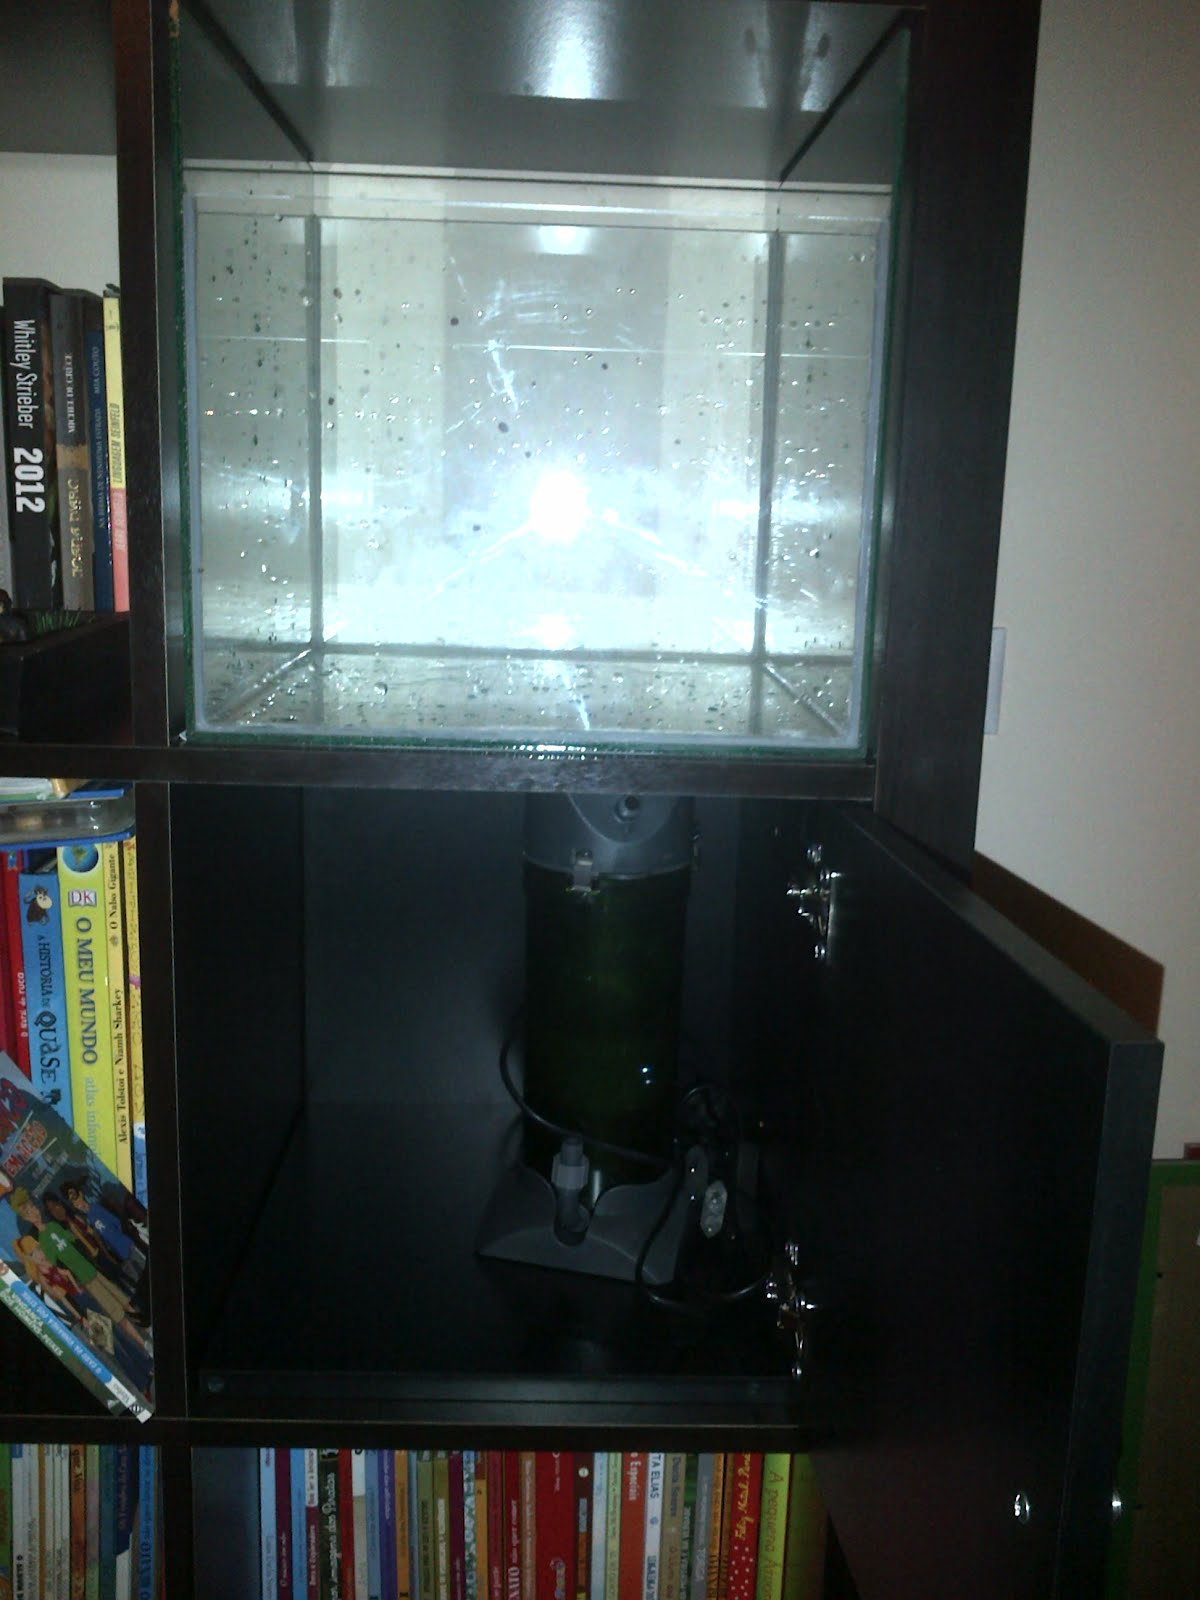 Aquarium Unterschrank Ikea Expedit ~   aquarium to put the filter and other stuff needed for the aquarium to